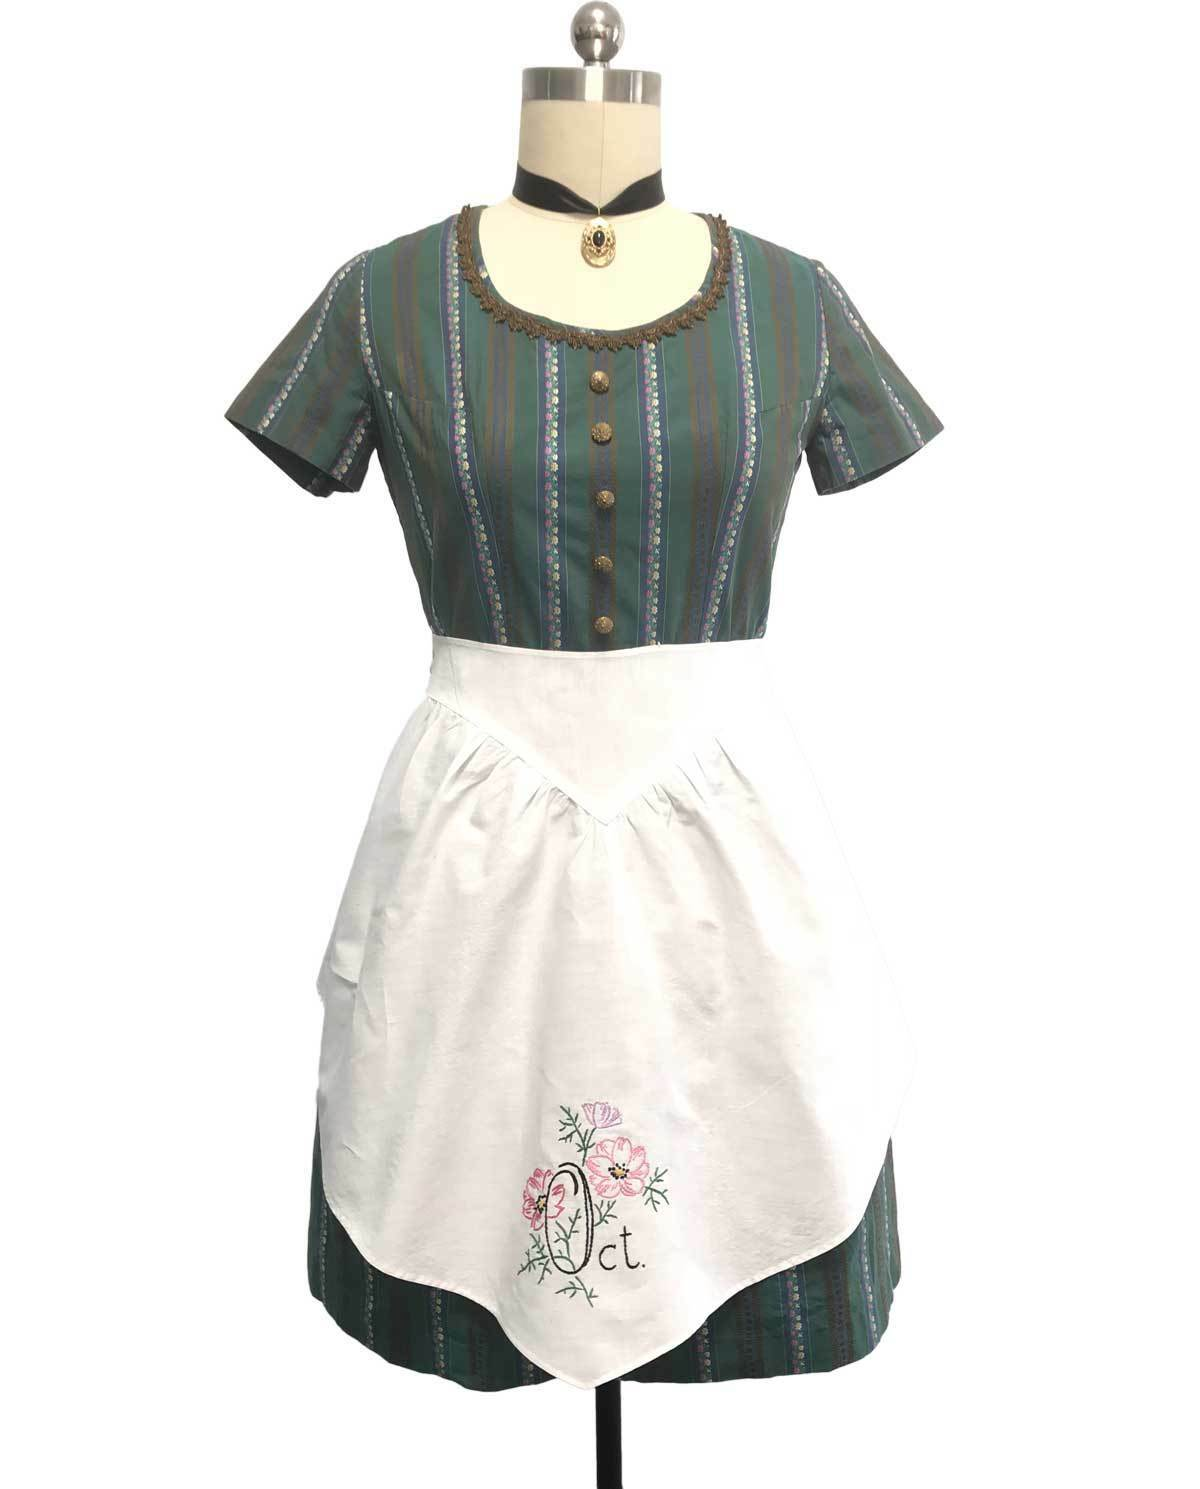 Vtg Oktoberfest Handmade Green Dirndl Dress Short Sleeve w Apron sz 14US